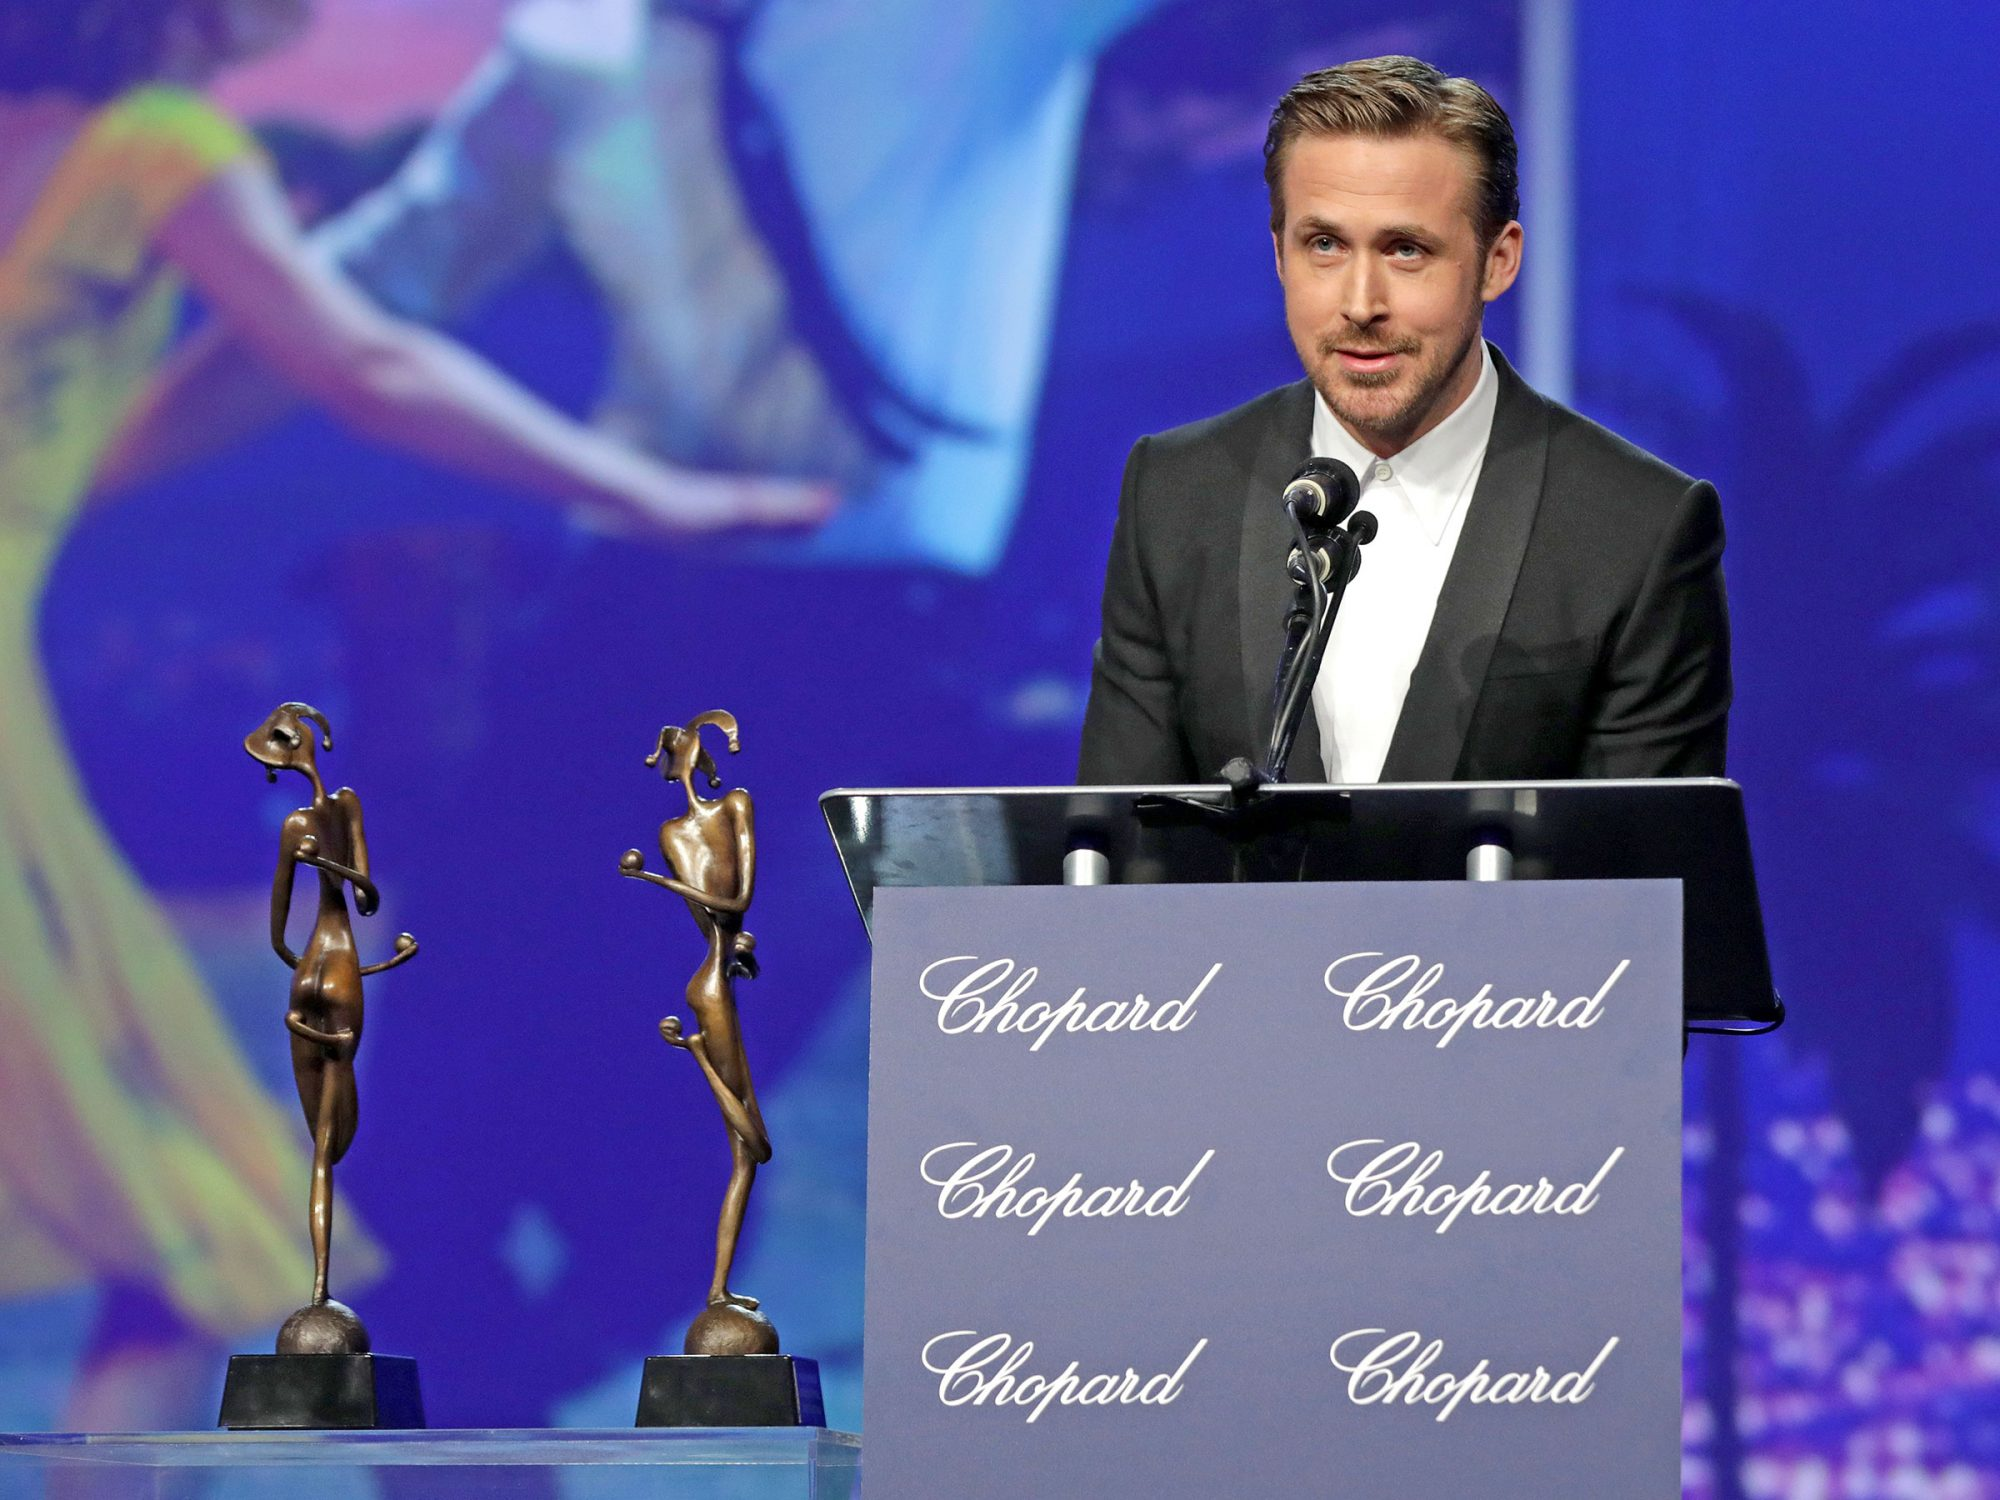 28th Annual Palm Springs International Film Festival - Awards Presentation